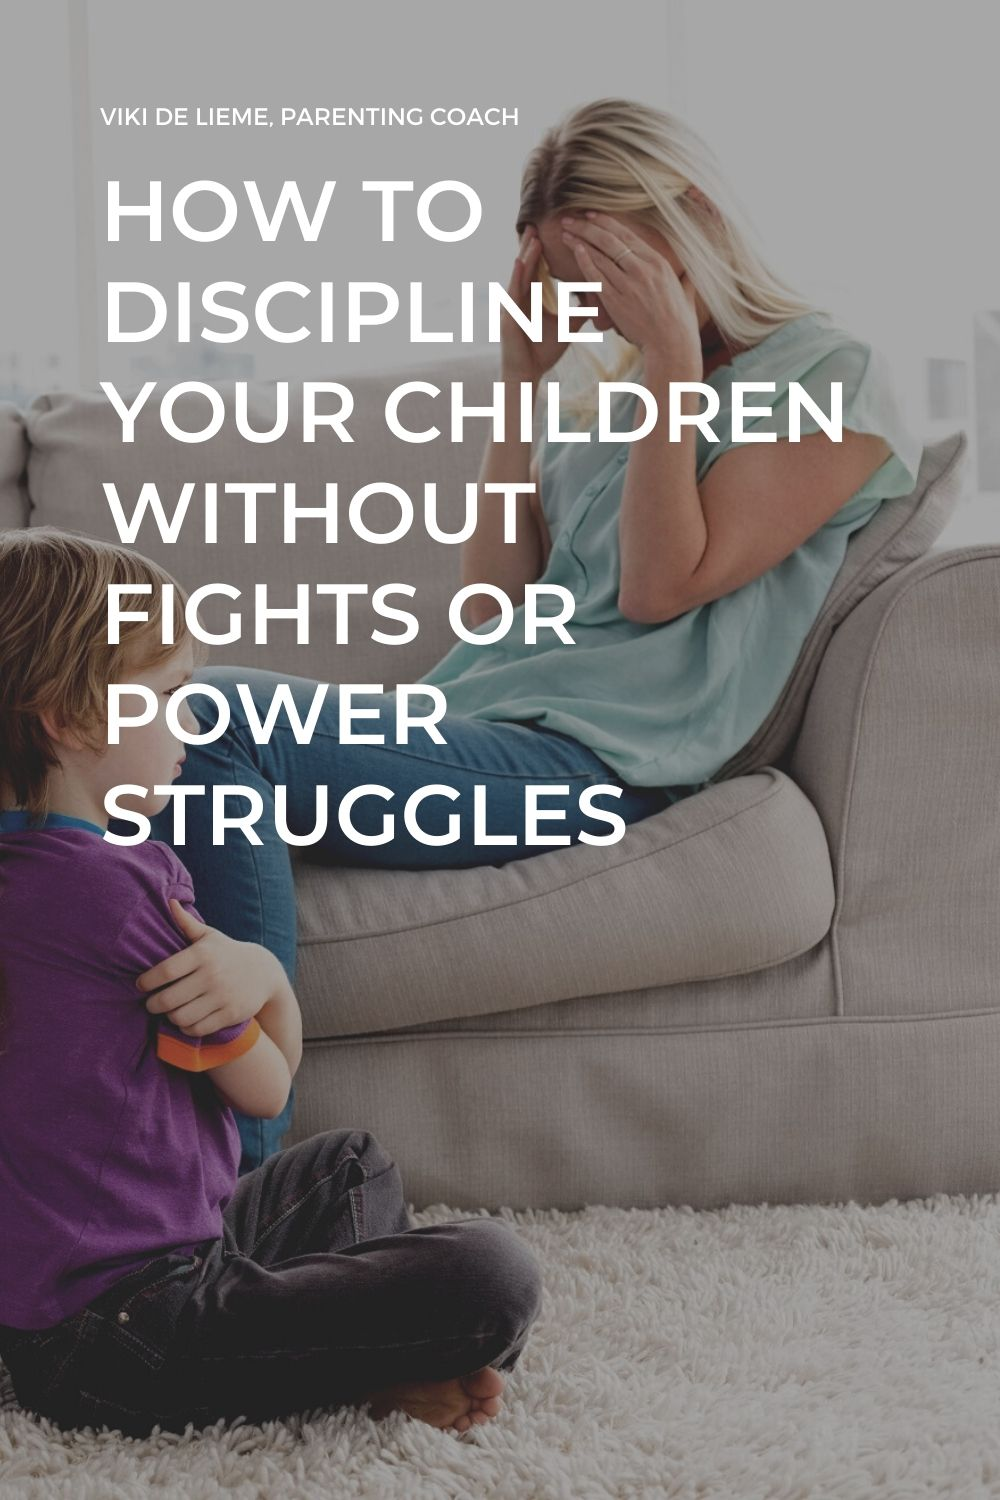 This is how you can discipline your children without fights and power struggles #parenting #discipline #powerstruggles #positiveparenting #attachmentparenting #parentingtips Peacefulparenting